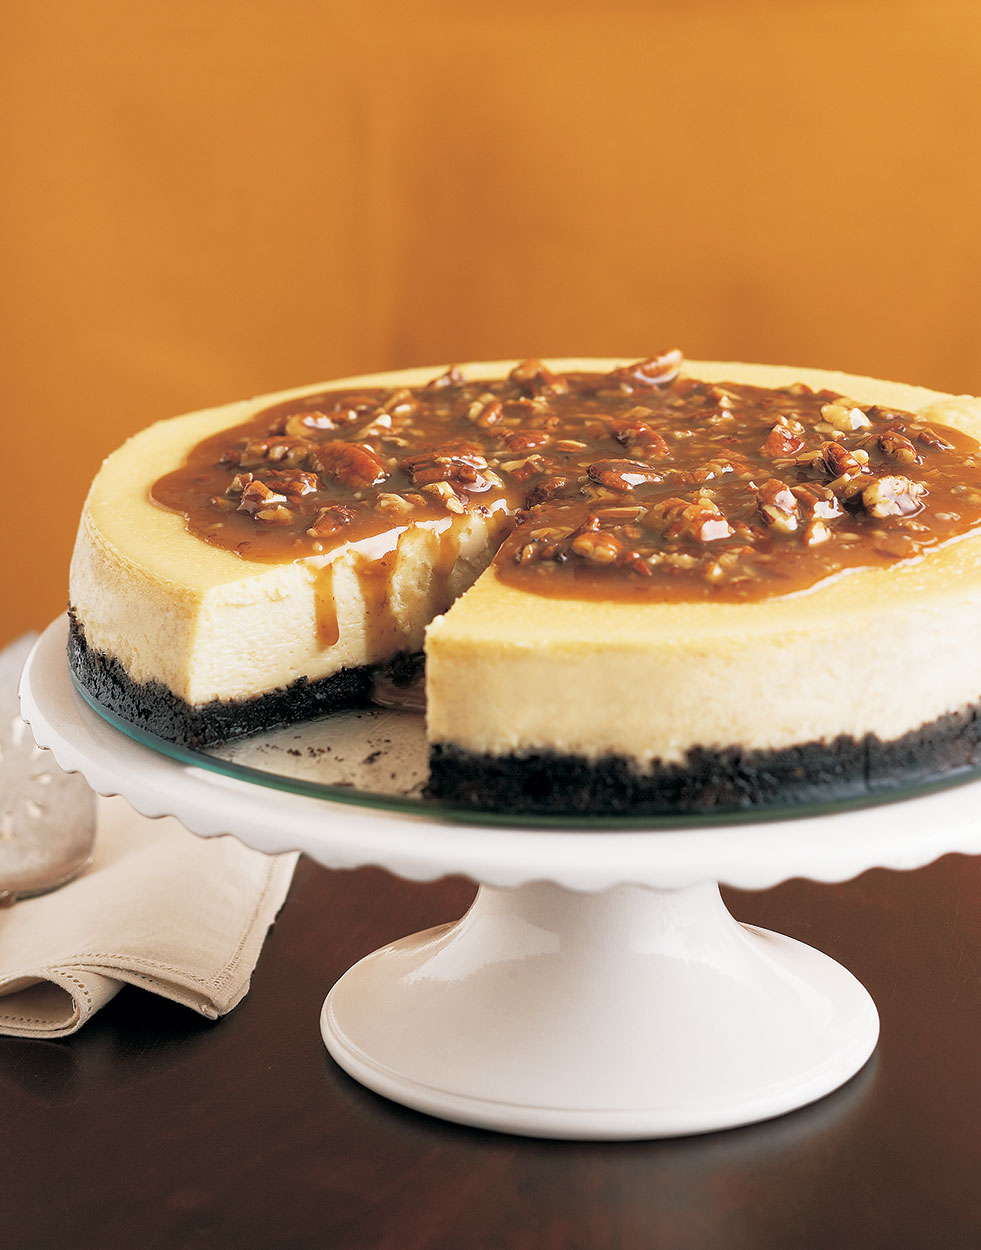 Pecan Pie Cheesecake with Caramel-Bourbon Sauce